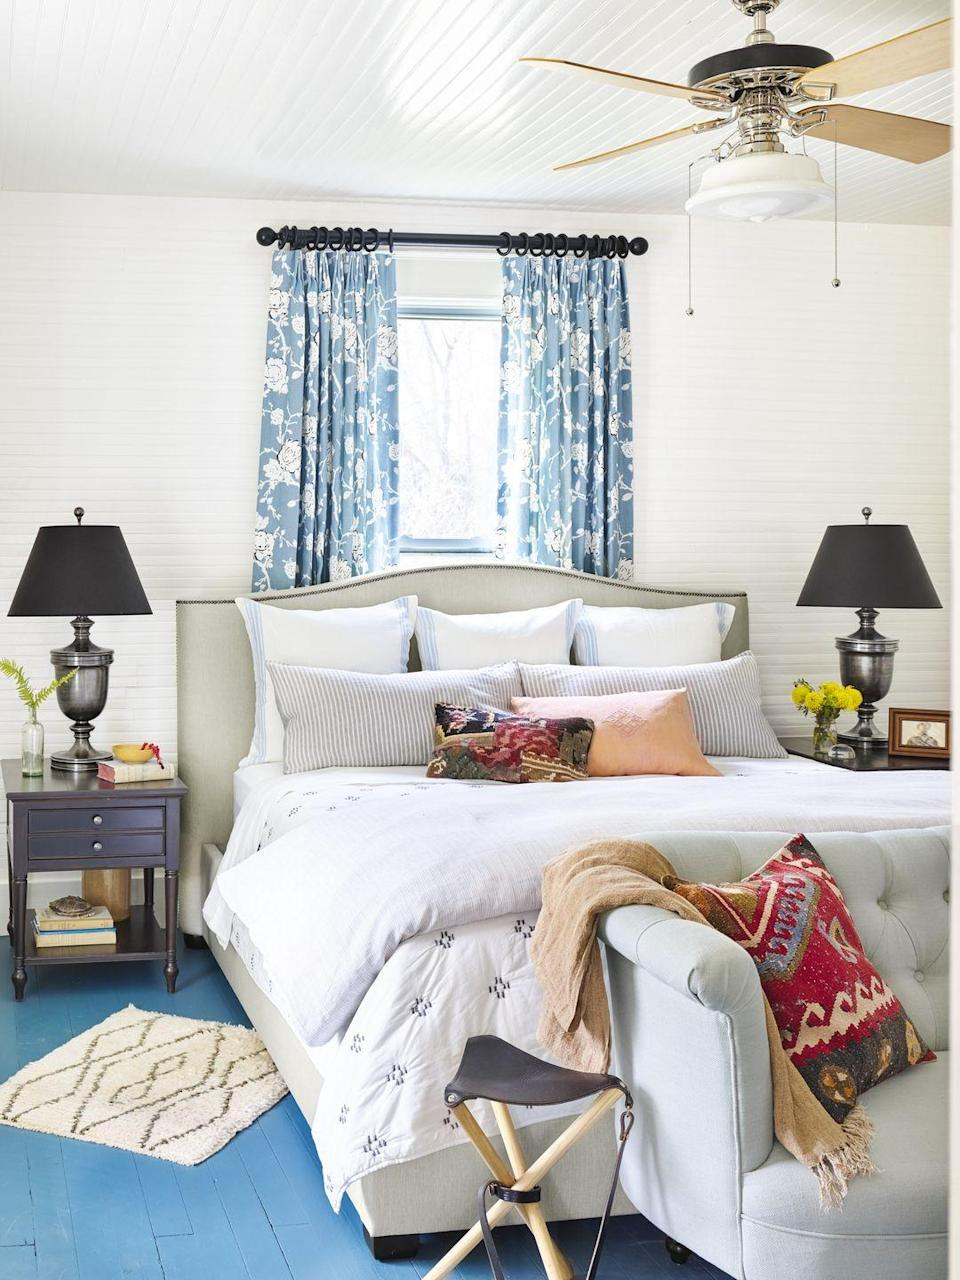 <p>If you've got a case of lackluster flooring, bring on the paint. Bright blue planks paired with white walls flip the usual decor combo in this bedroom. </p>